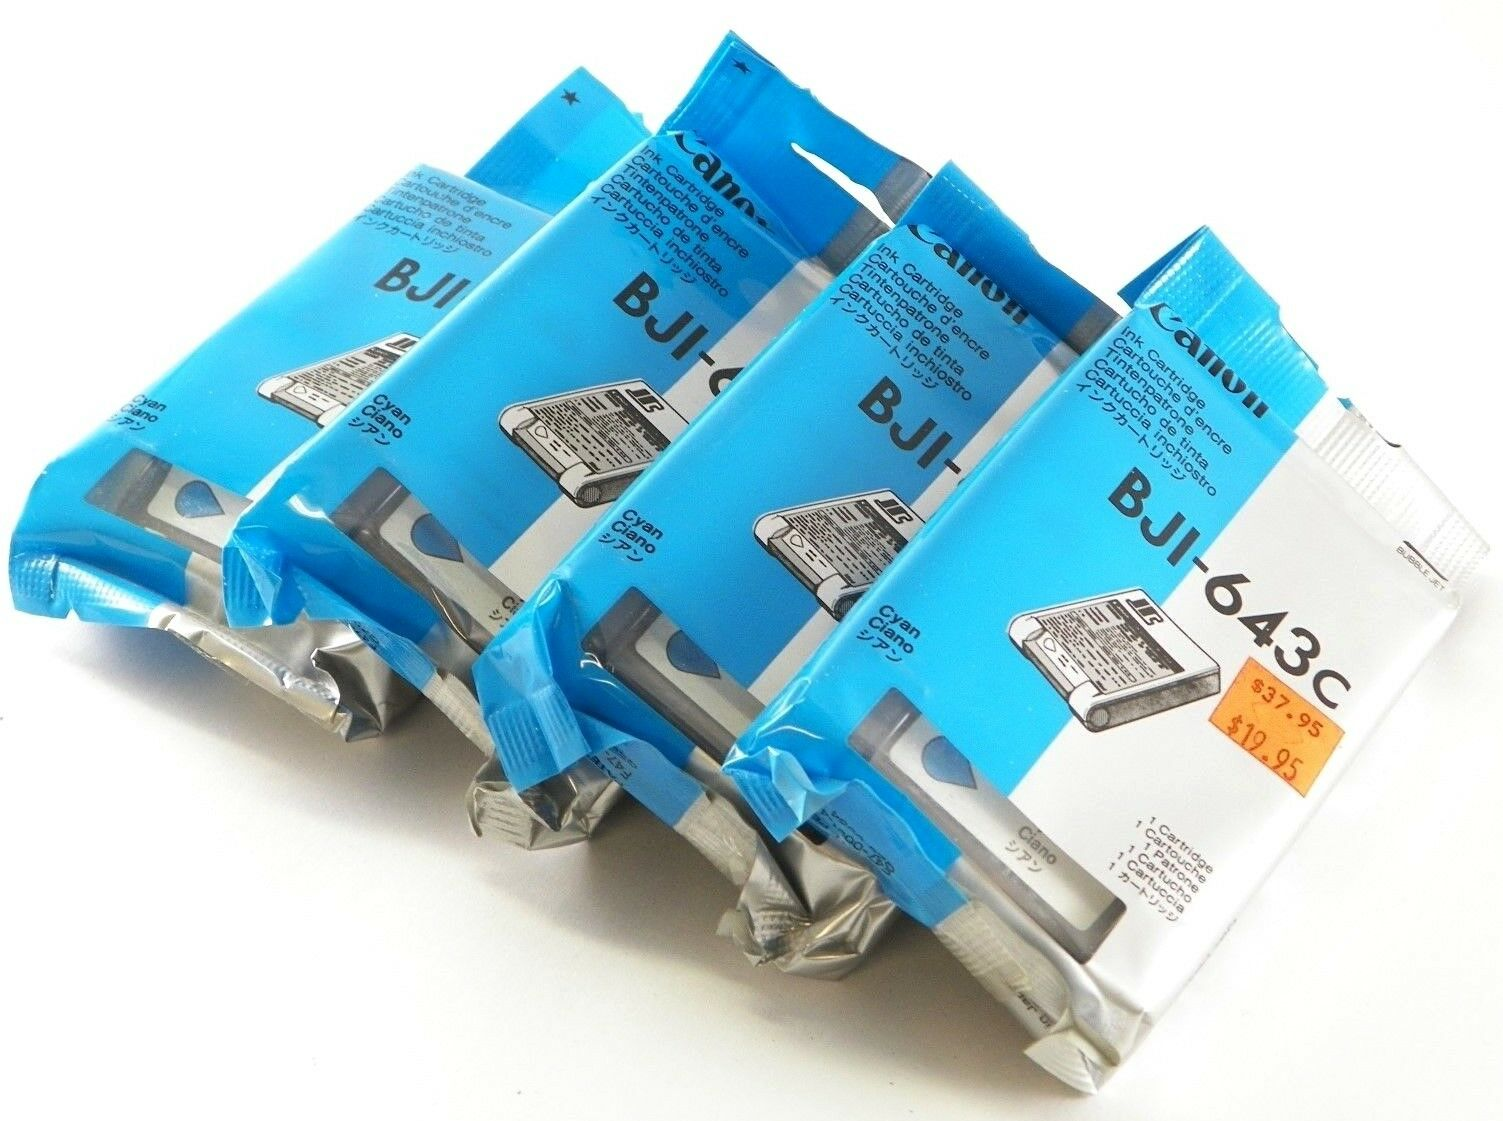 Canon Bji 643 Cyan Ink Cartridge Bubble Jet 643c New Sealed Tinta 831 1 Of 7only 2 Available